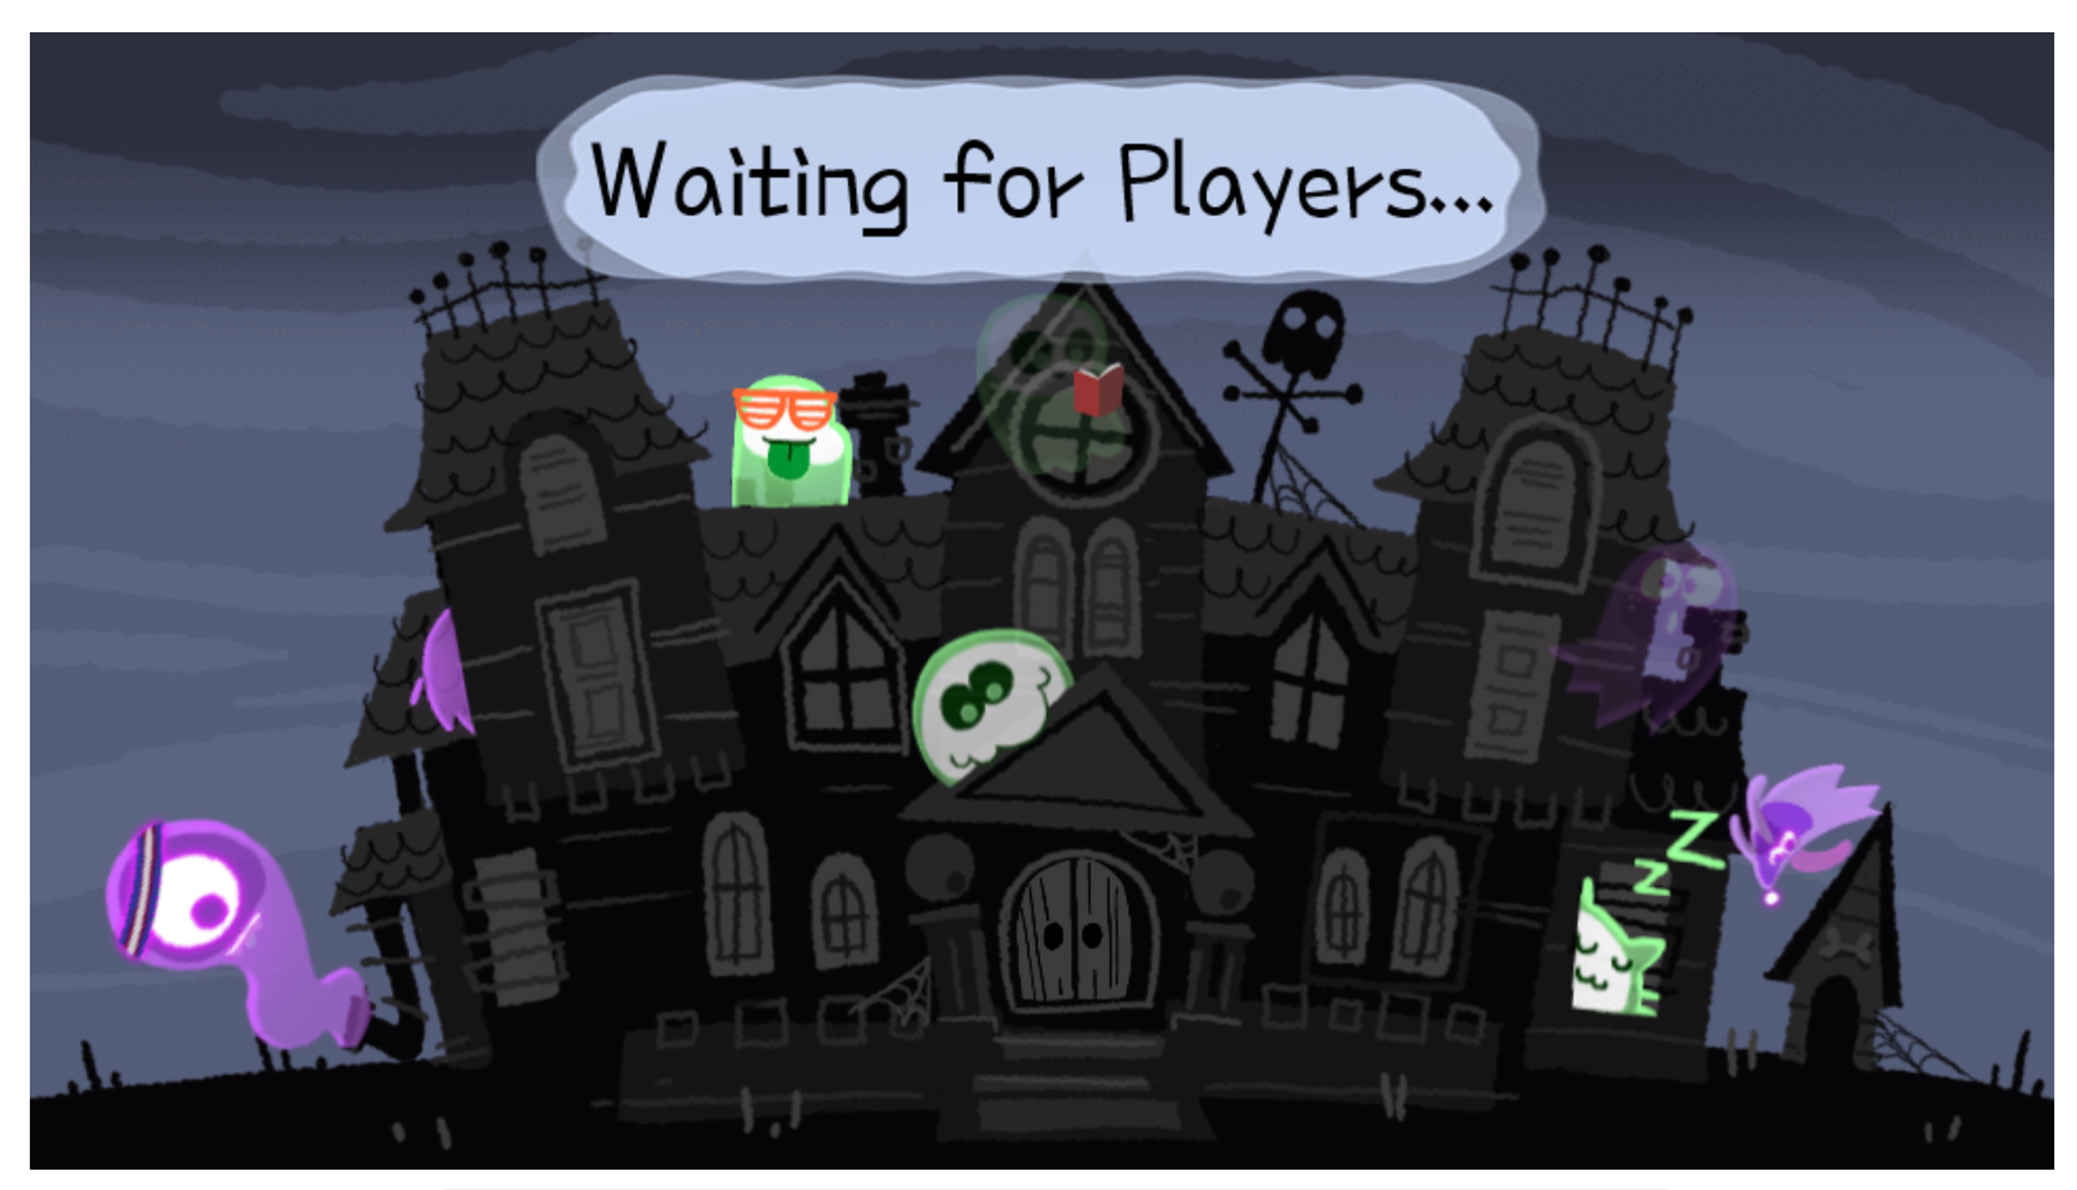 Google Doodle celebrates Halloween with multiplayer game